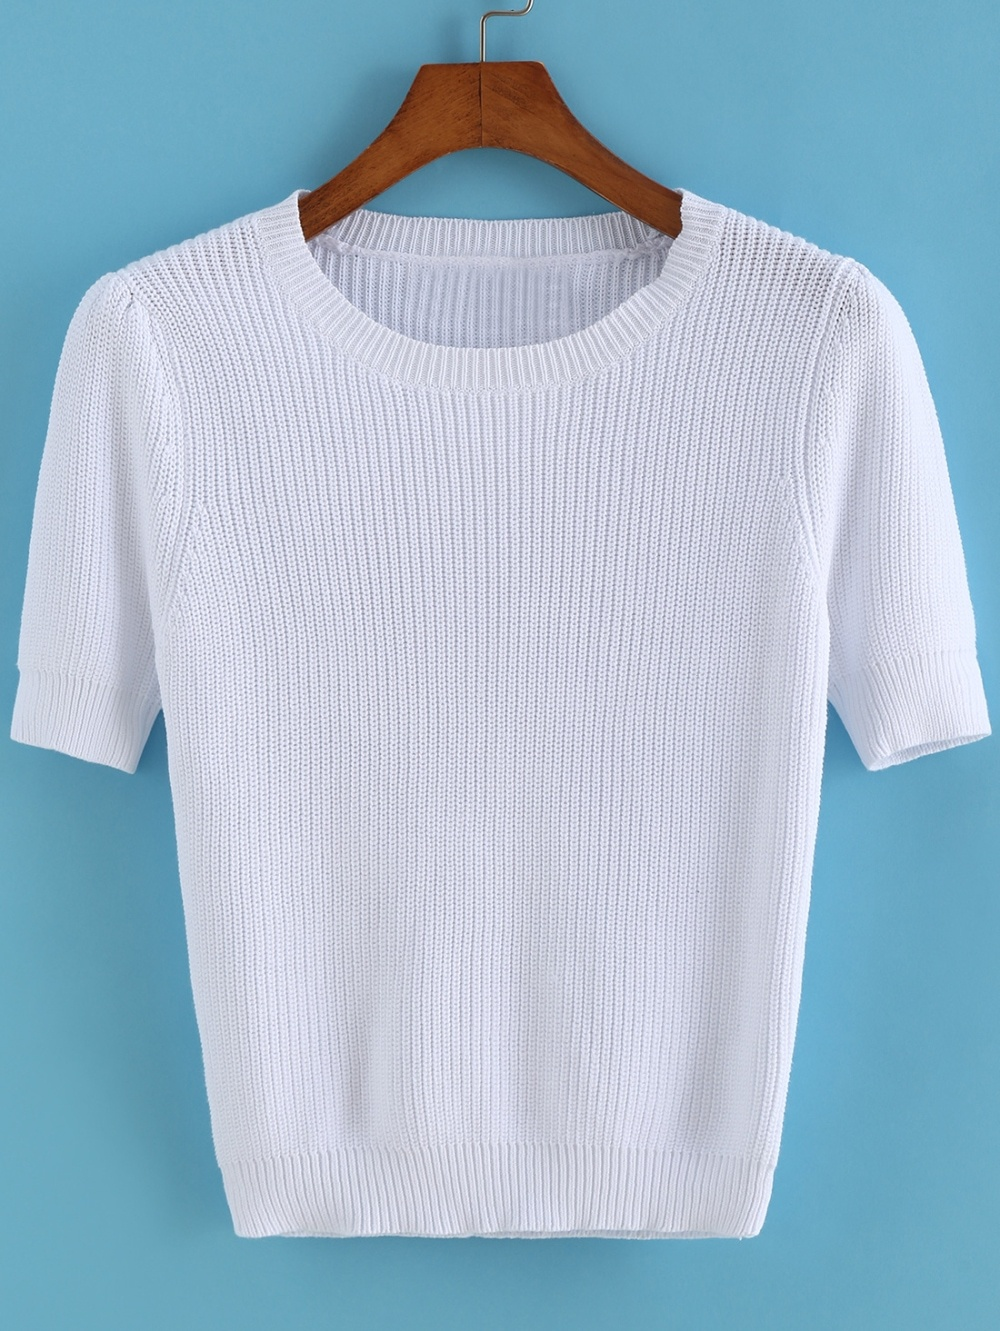 Short Sleeve Knit White Sweater